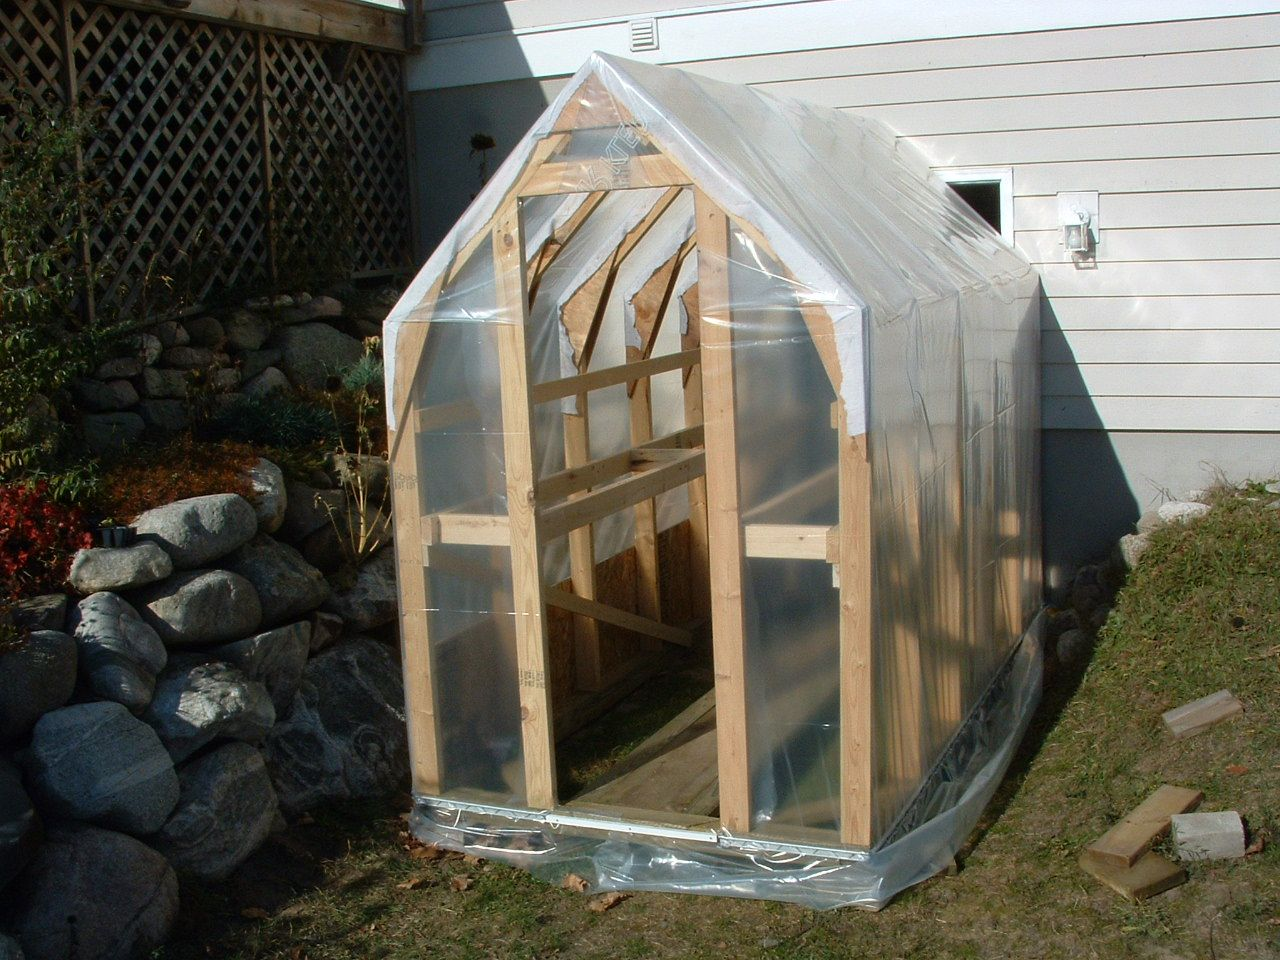 My Homemade Greenhouse | Pinterest | Homemade greenhouse, Diy ... on greenhouse architecture, wood greenhouse plans, backyard greenhouse plans, easy greenhouse plans, solar greenhouse plans, big greenhouse plans, lean to greenhouse plans, greenhouse ideas, hobby greenhouse plans, greenhouse garden designs, greenhouse layout, pvc greenhouse plans, winter greenhouse plans, attached greenhouse plans, homemade greenhouse plans, diy greenhouse plans, small greenhouse plans, greenhouse cabinets, greenhouse windows, a-frame greenhouse plans,